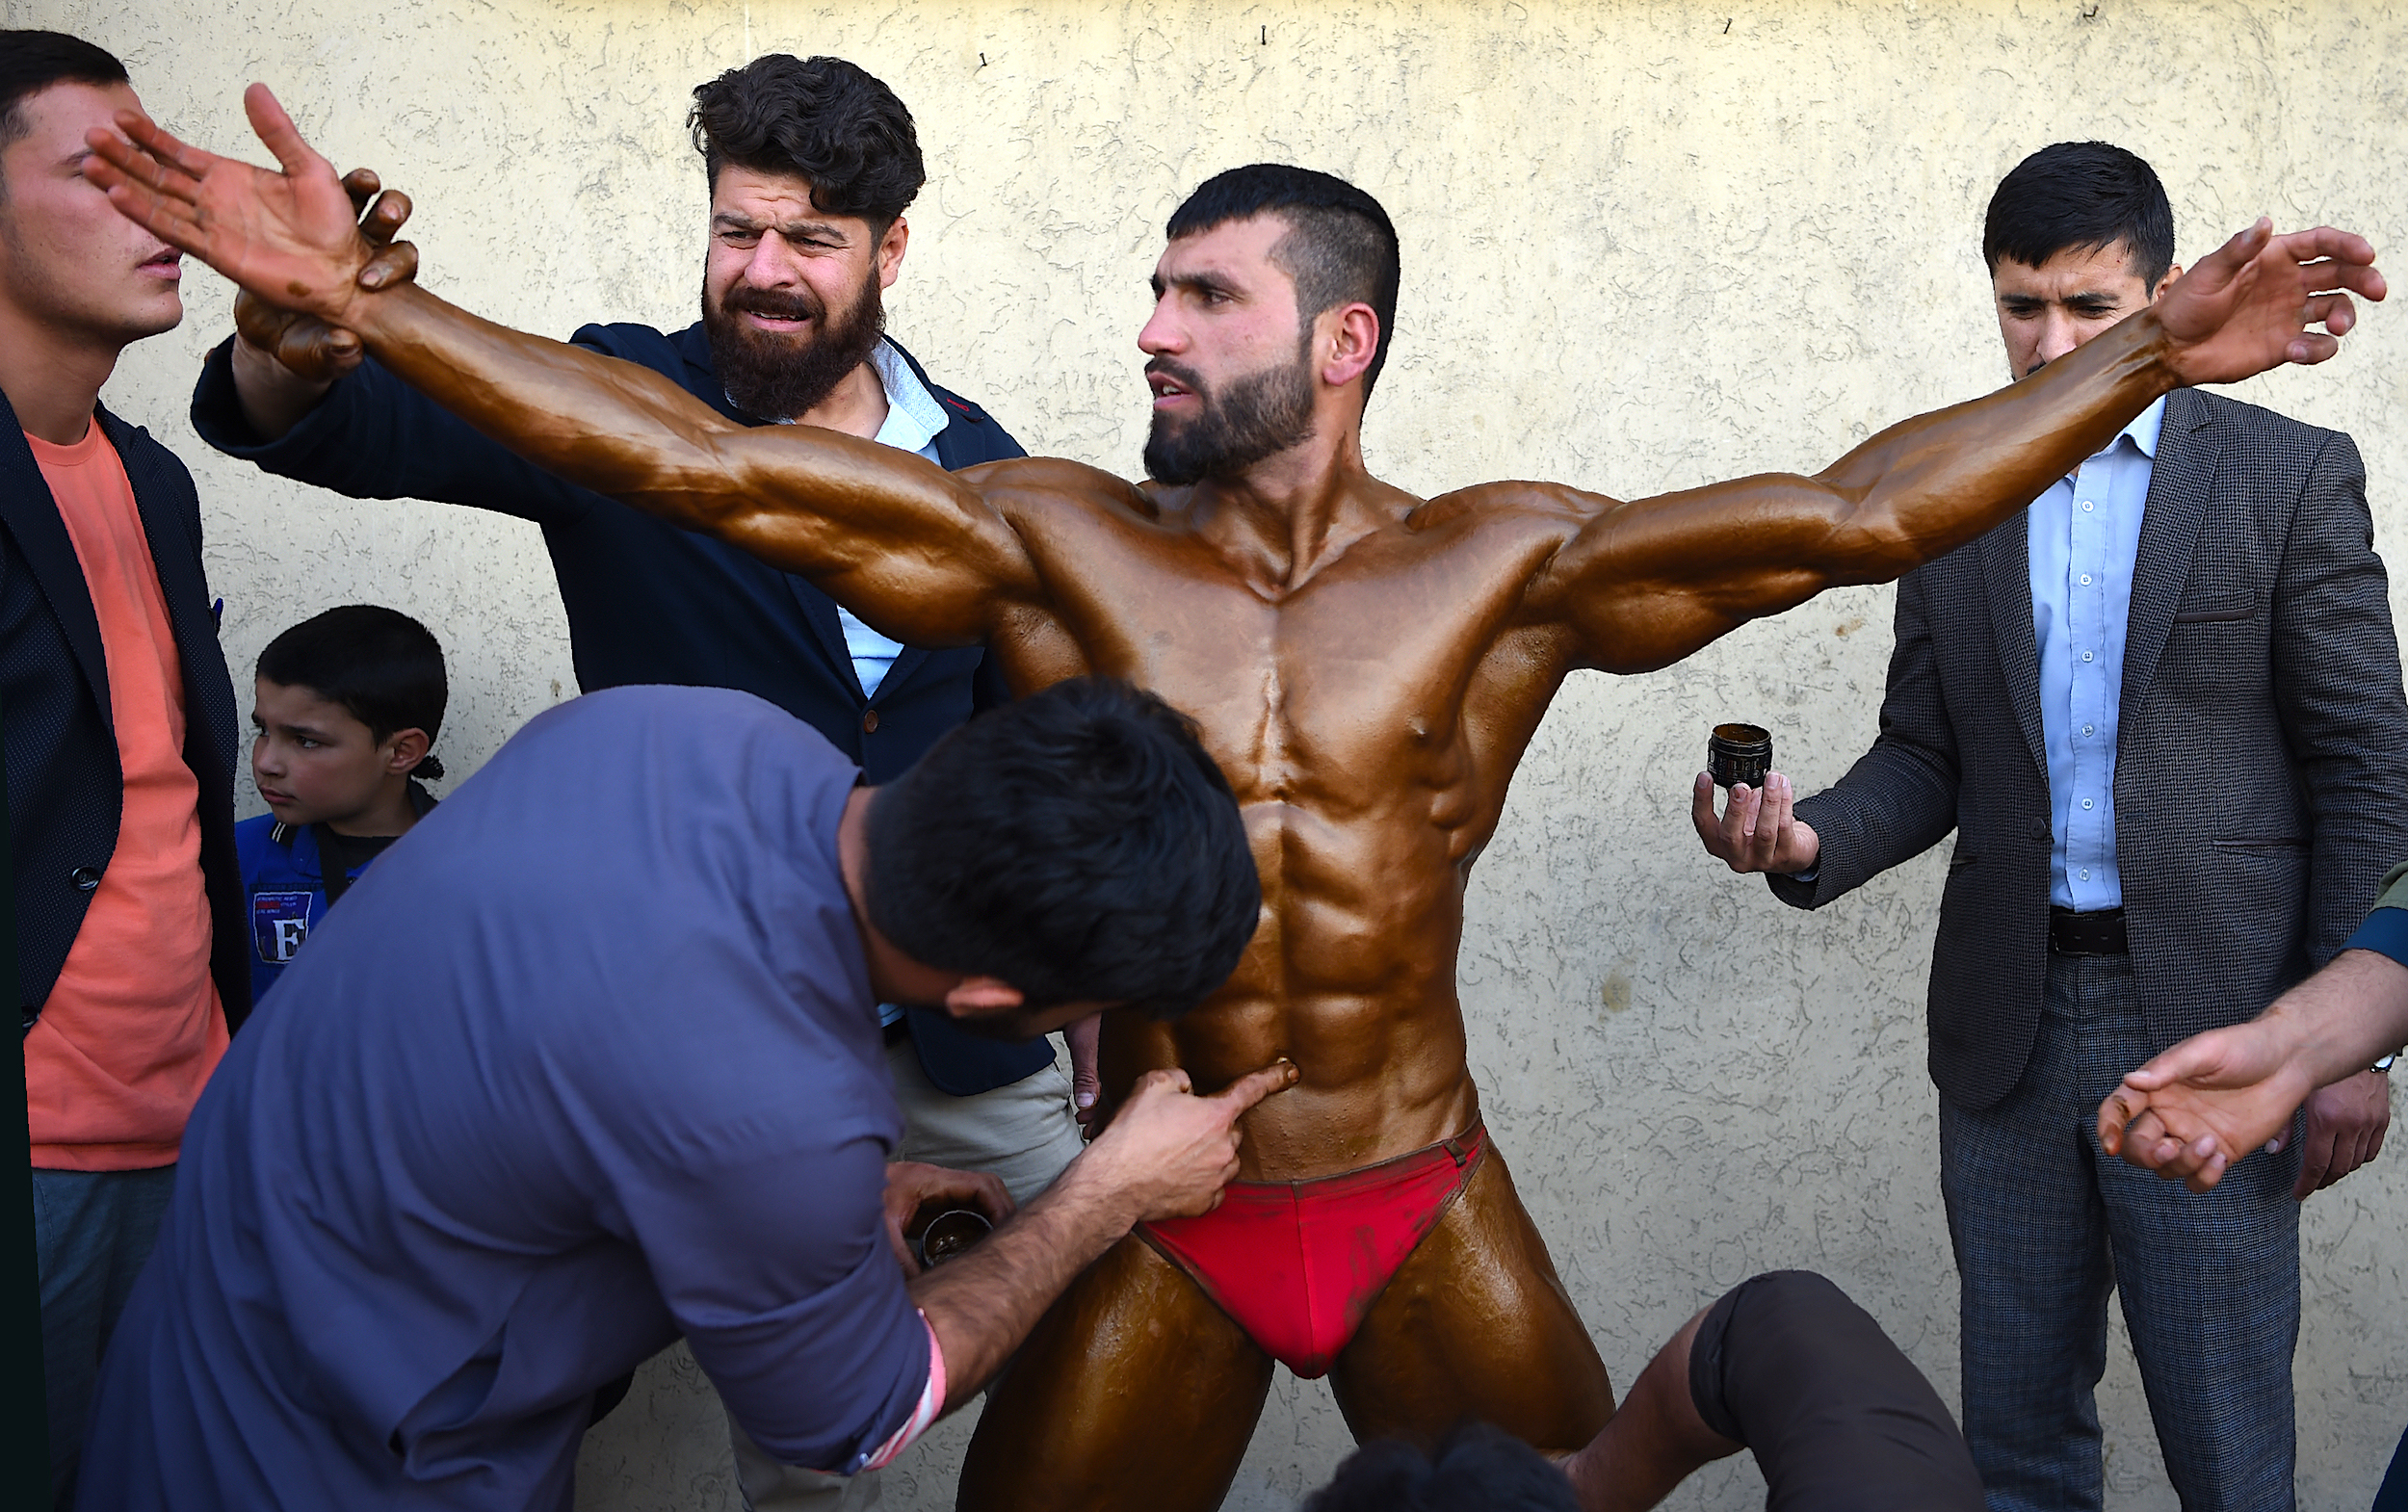 Young men take to bodybuilding gyms in war-torn Kabul